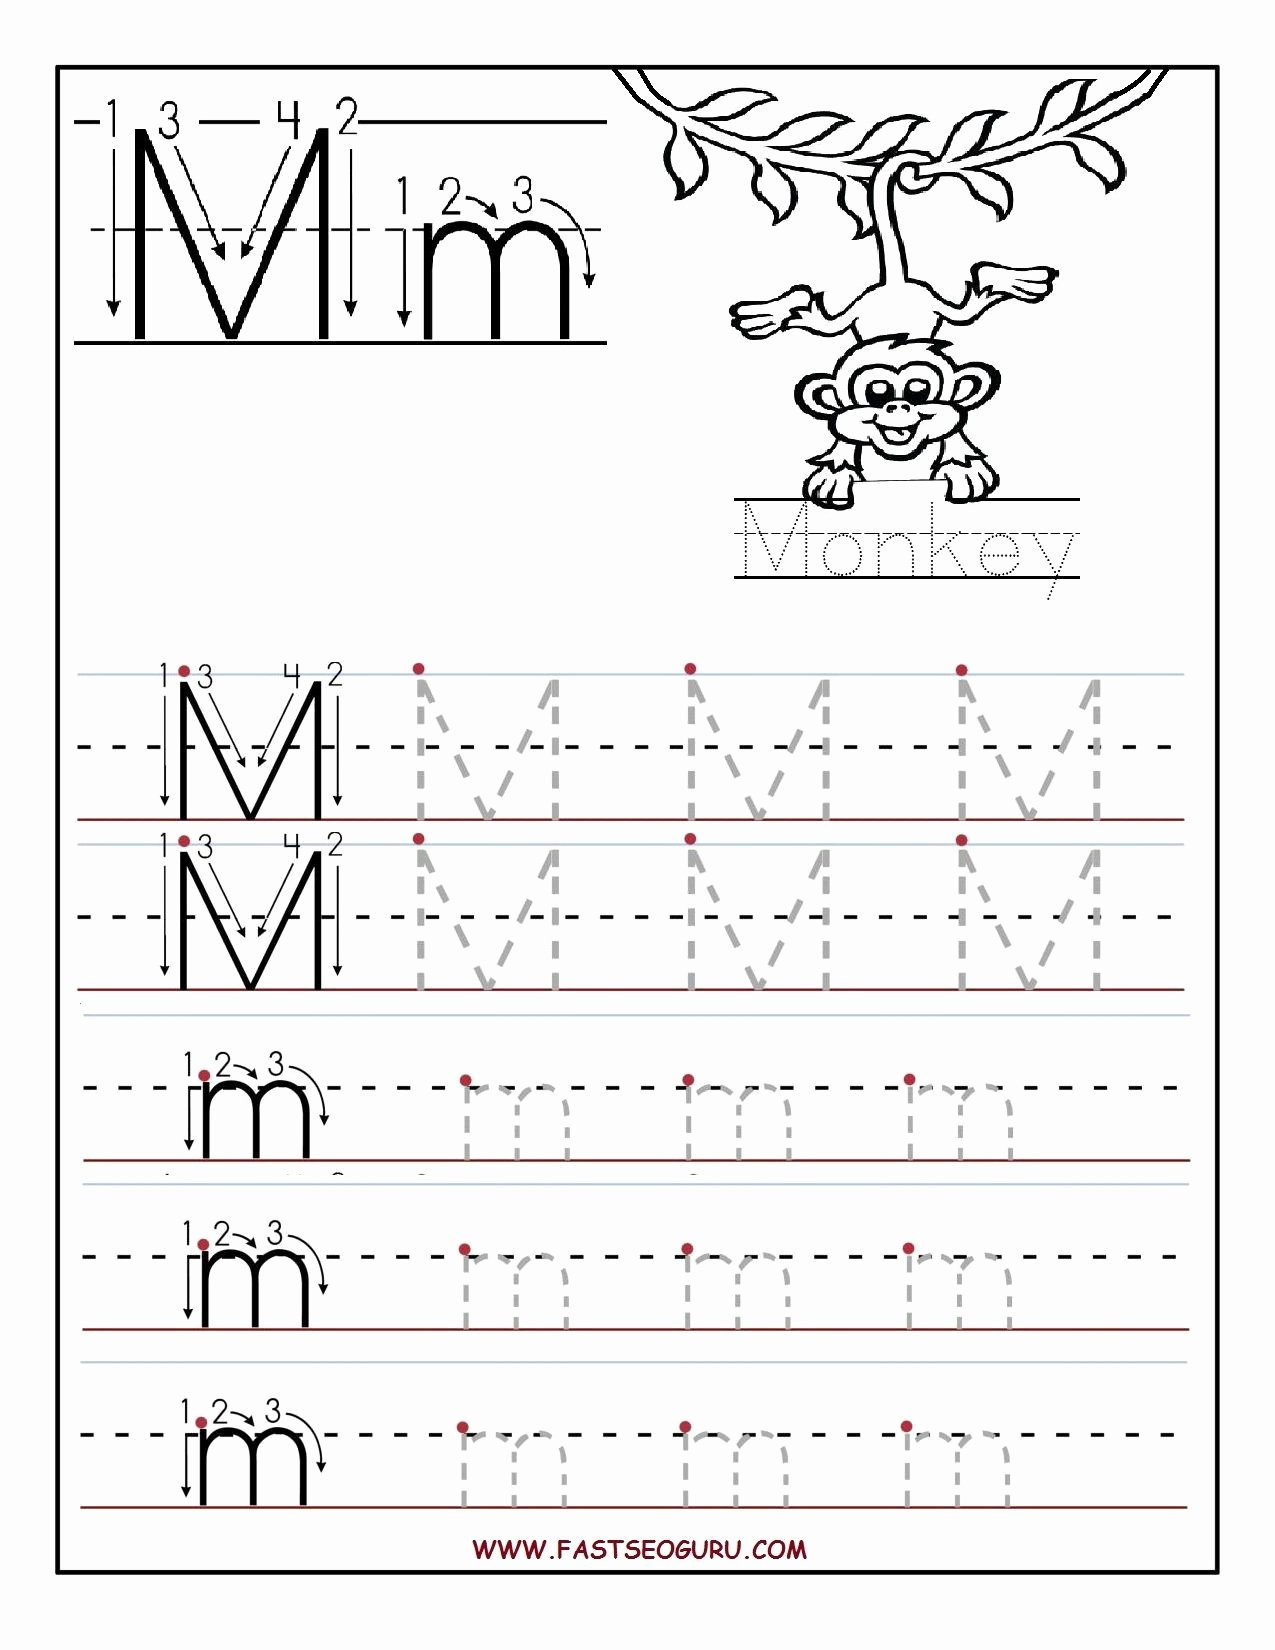 Letter M Worksheets for Preschoolers Beautiful Printable Letter M Tracing Worksheets for Preschool